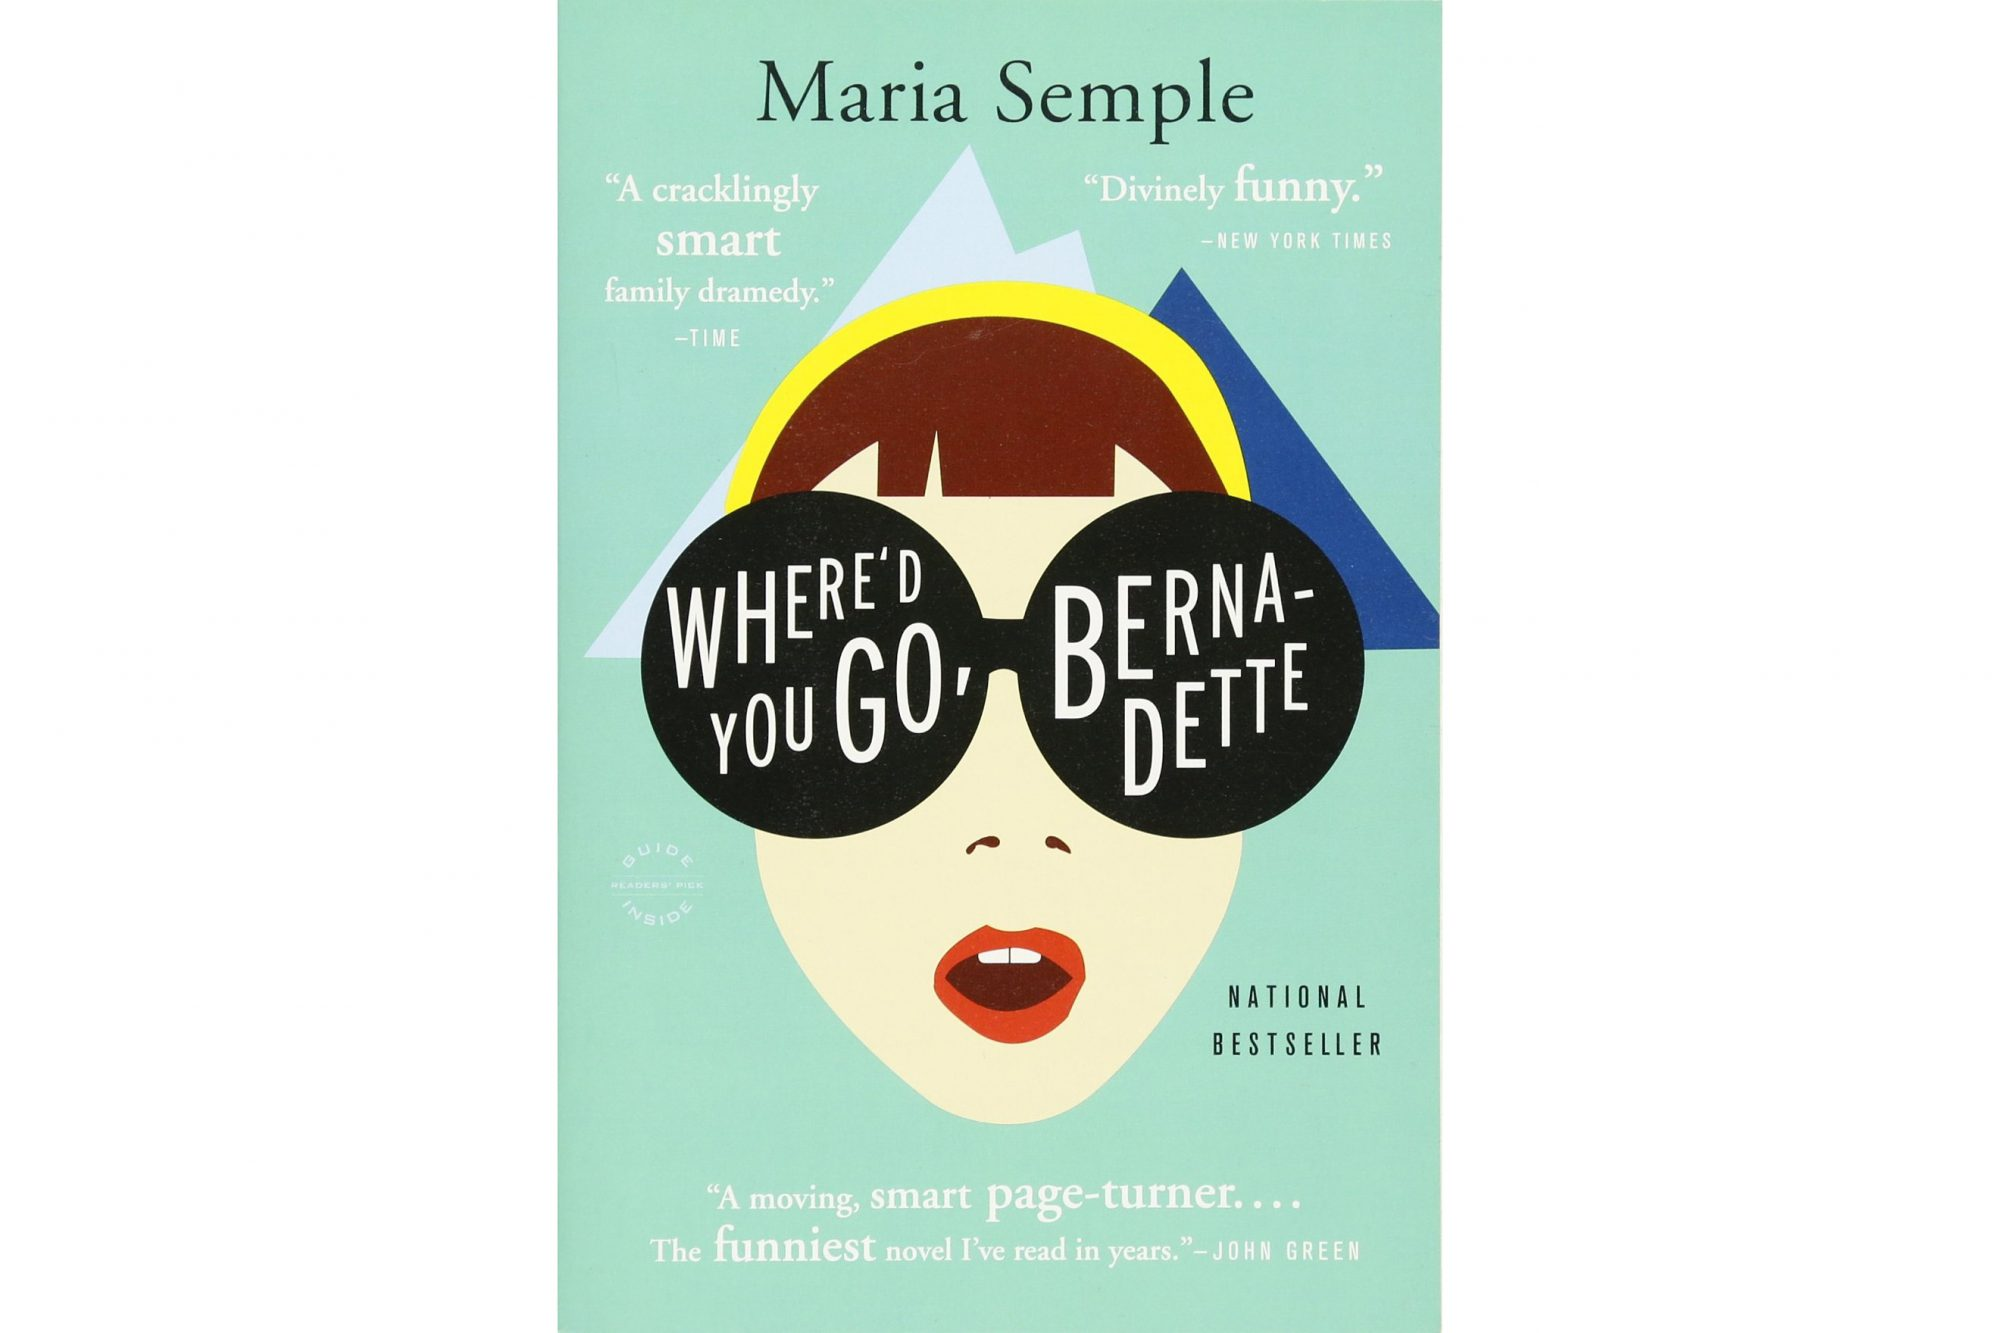 Where'd You Go Bernadette, by Maria Semple